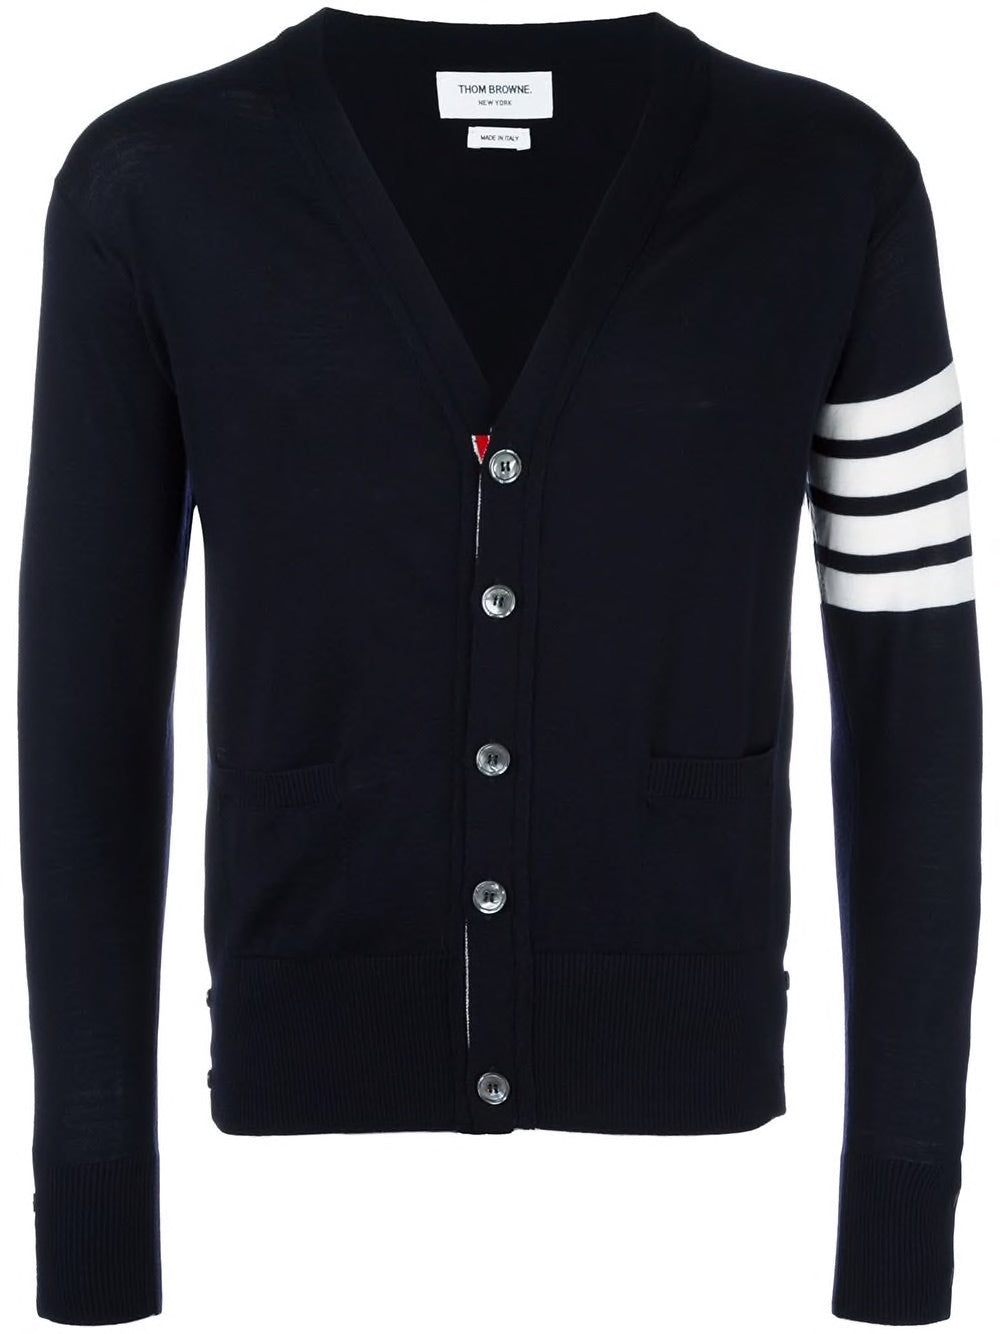 THOM BROWNE MEN CLASSIC V-NECK CARDIGAN IN FINE MERINO